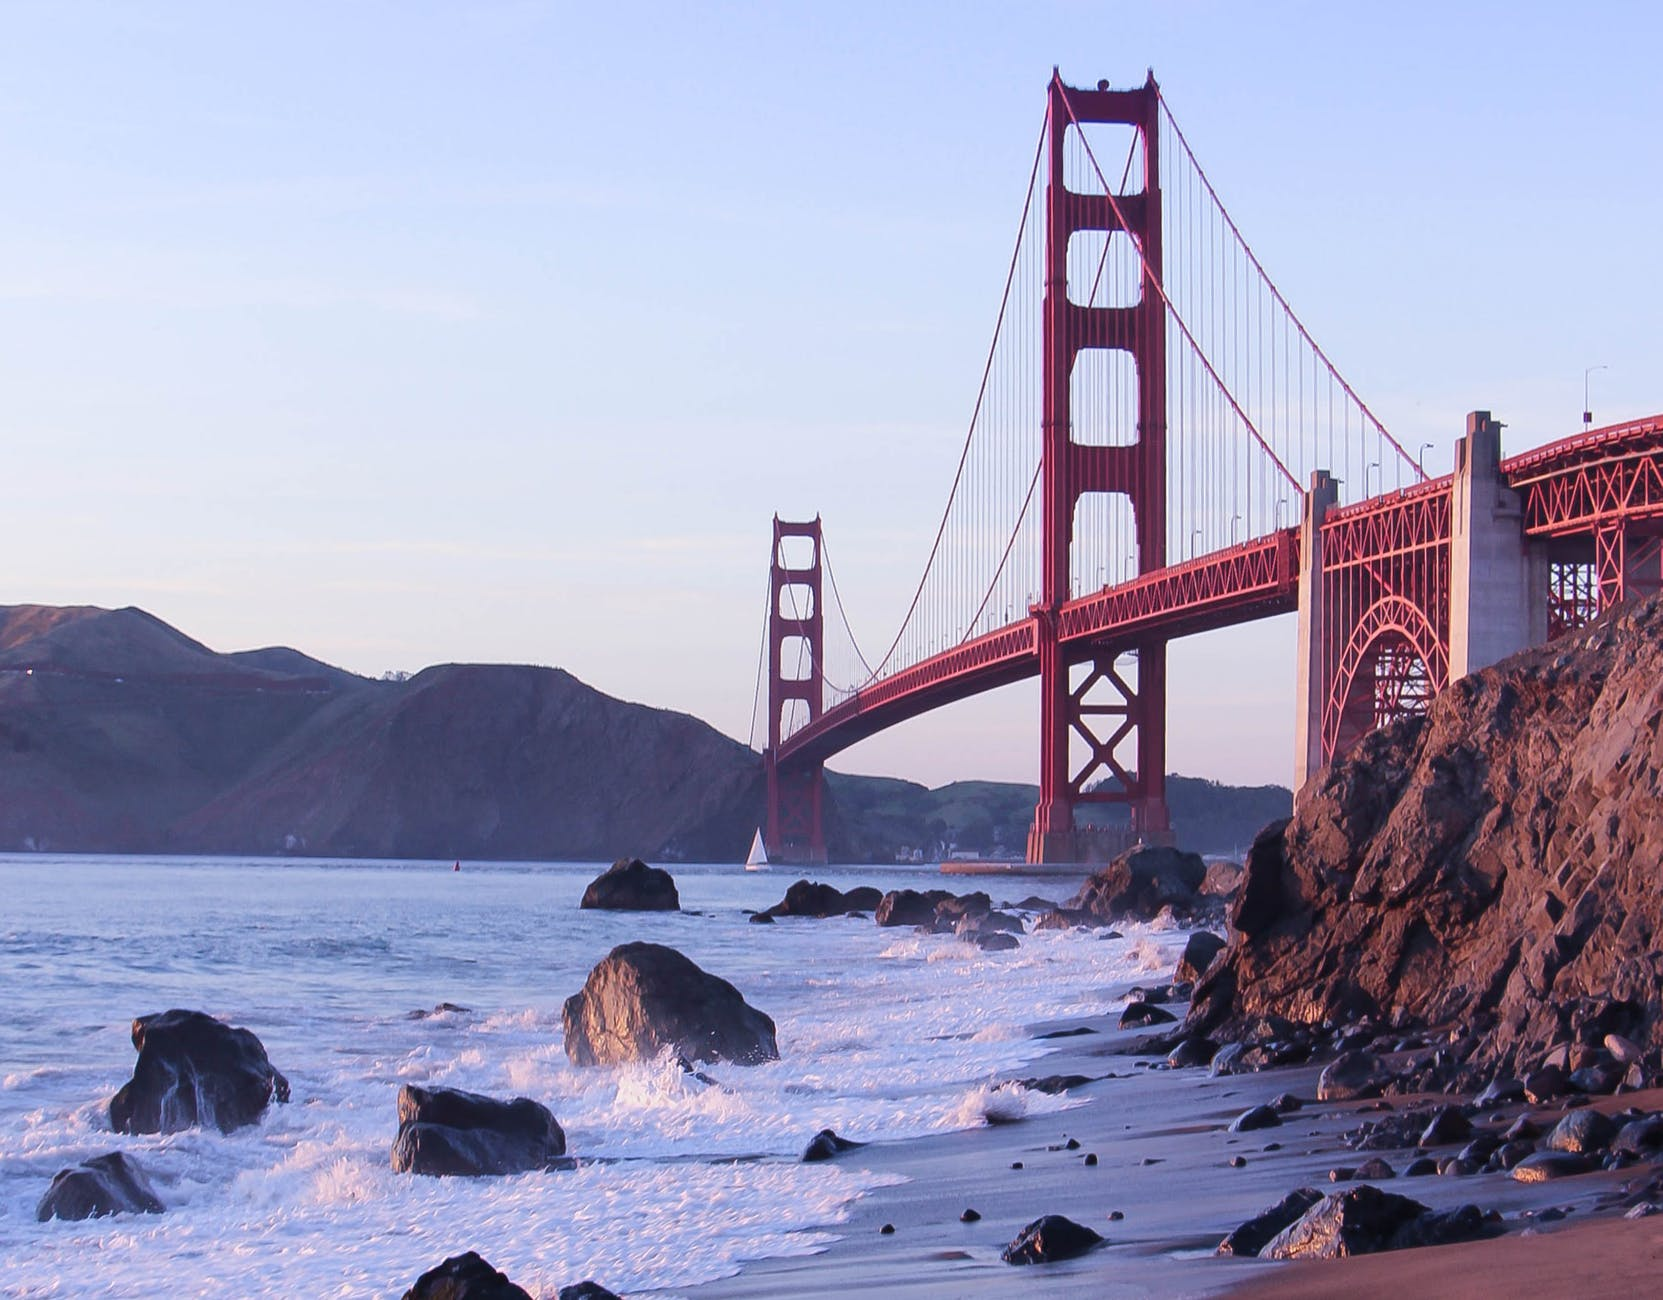 The Golden Gate - one of the free landmarks to see when living on a budget in San Francisco.